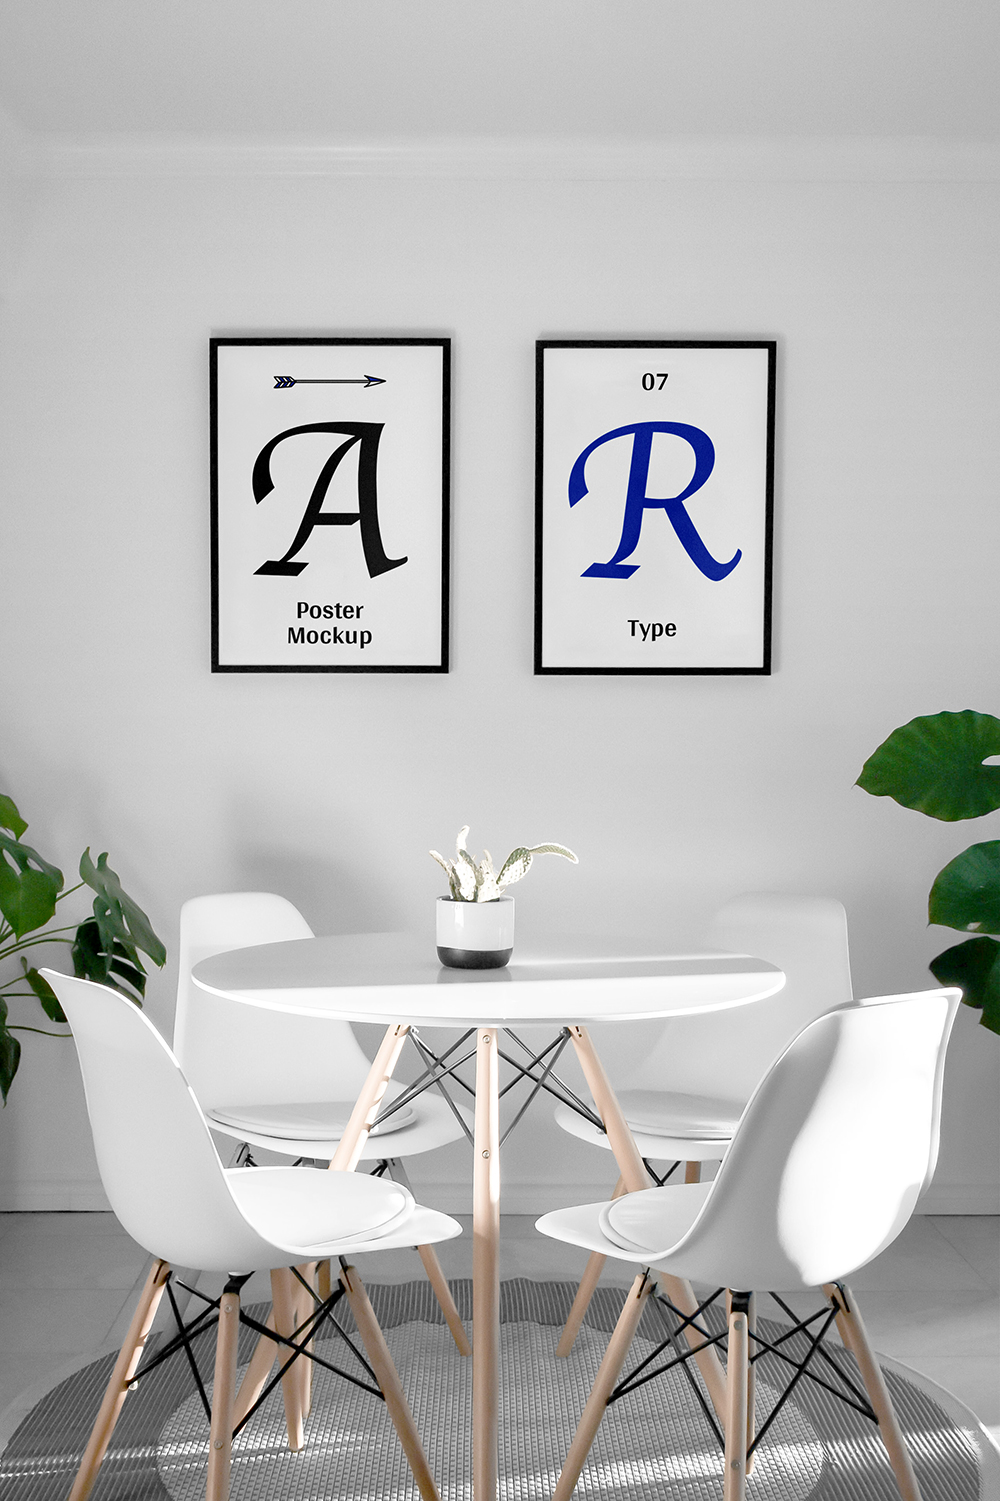 Two Poster Frames in Modern Setting - Free Mockup